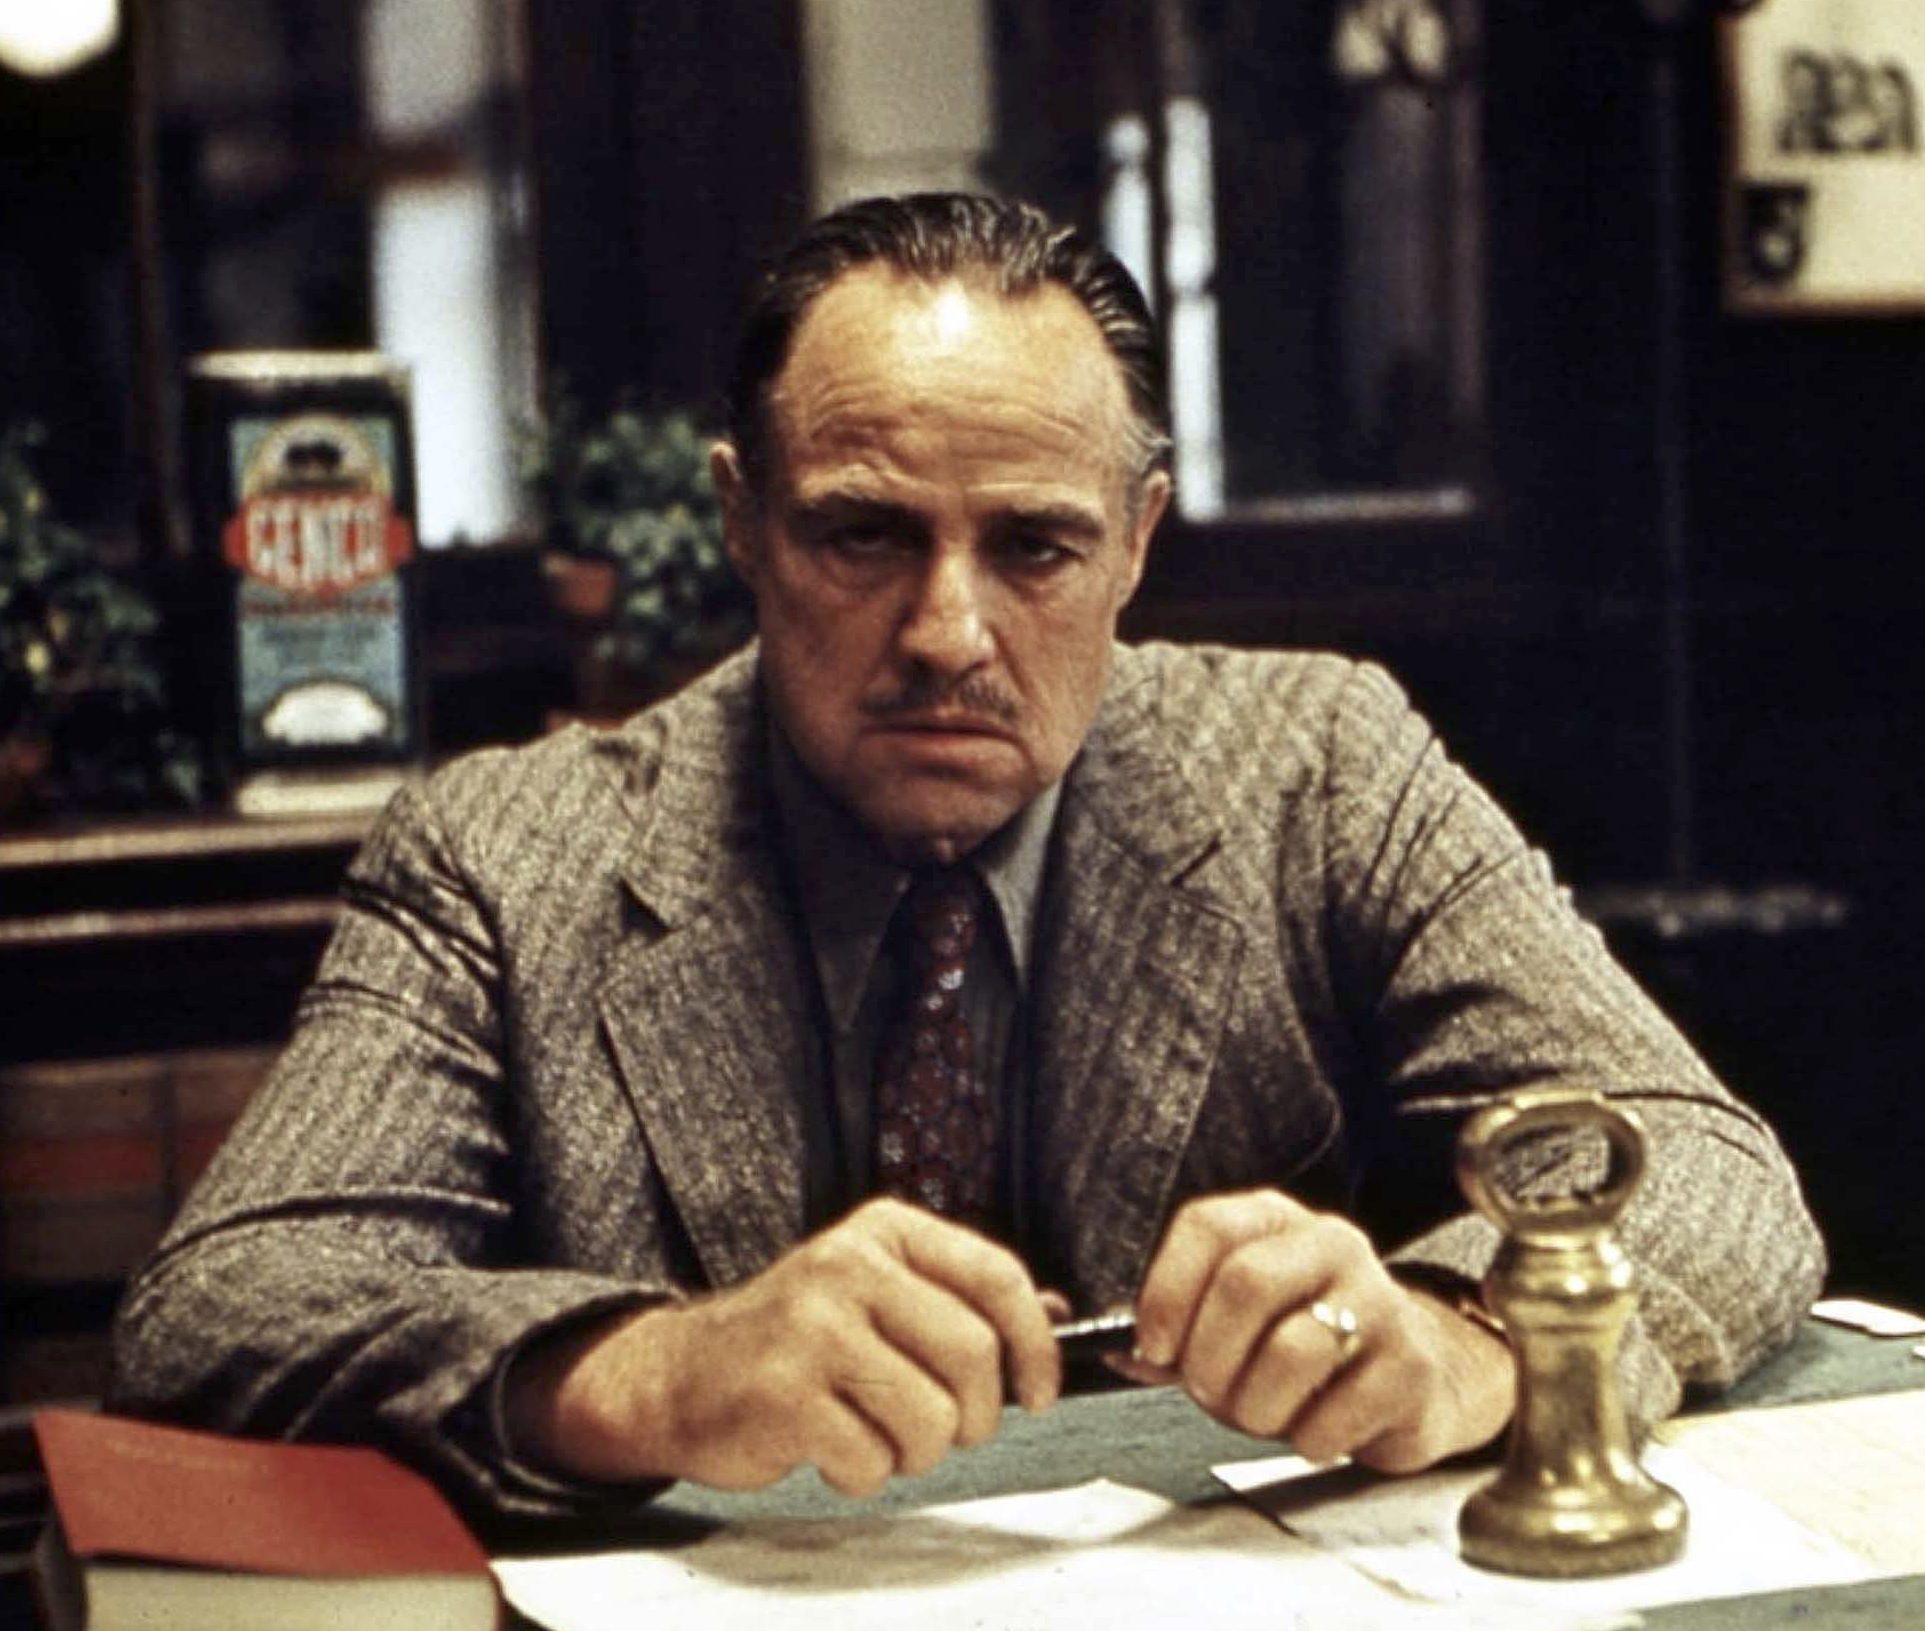 the godfather 1972 4 e1618320542527 20 Fascinating Facts About The Godfather You Can't Refuse